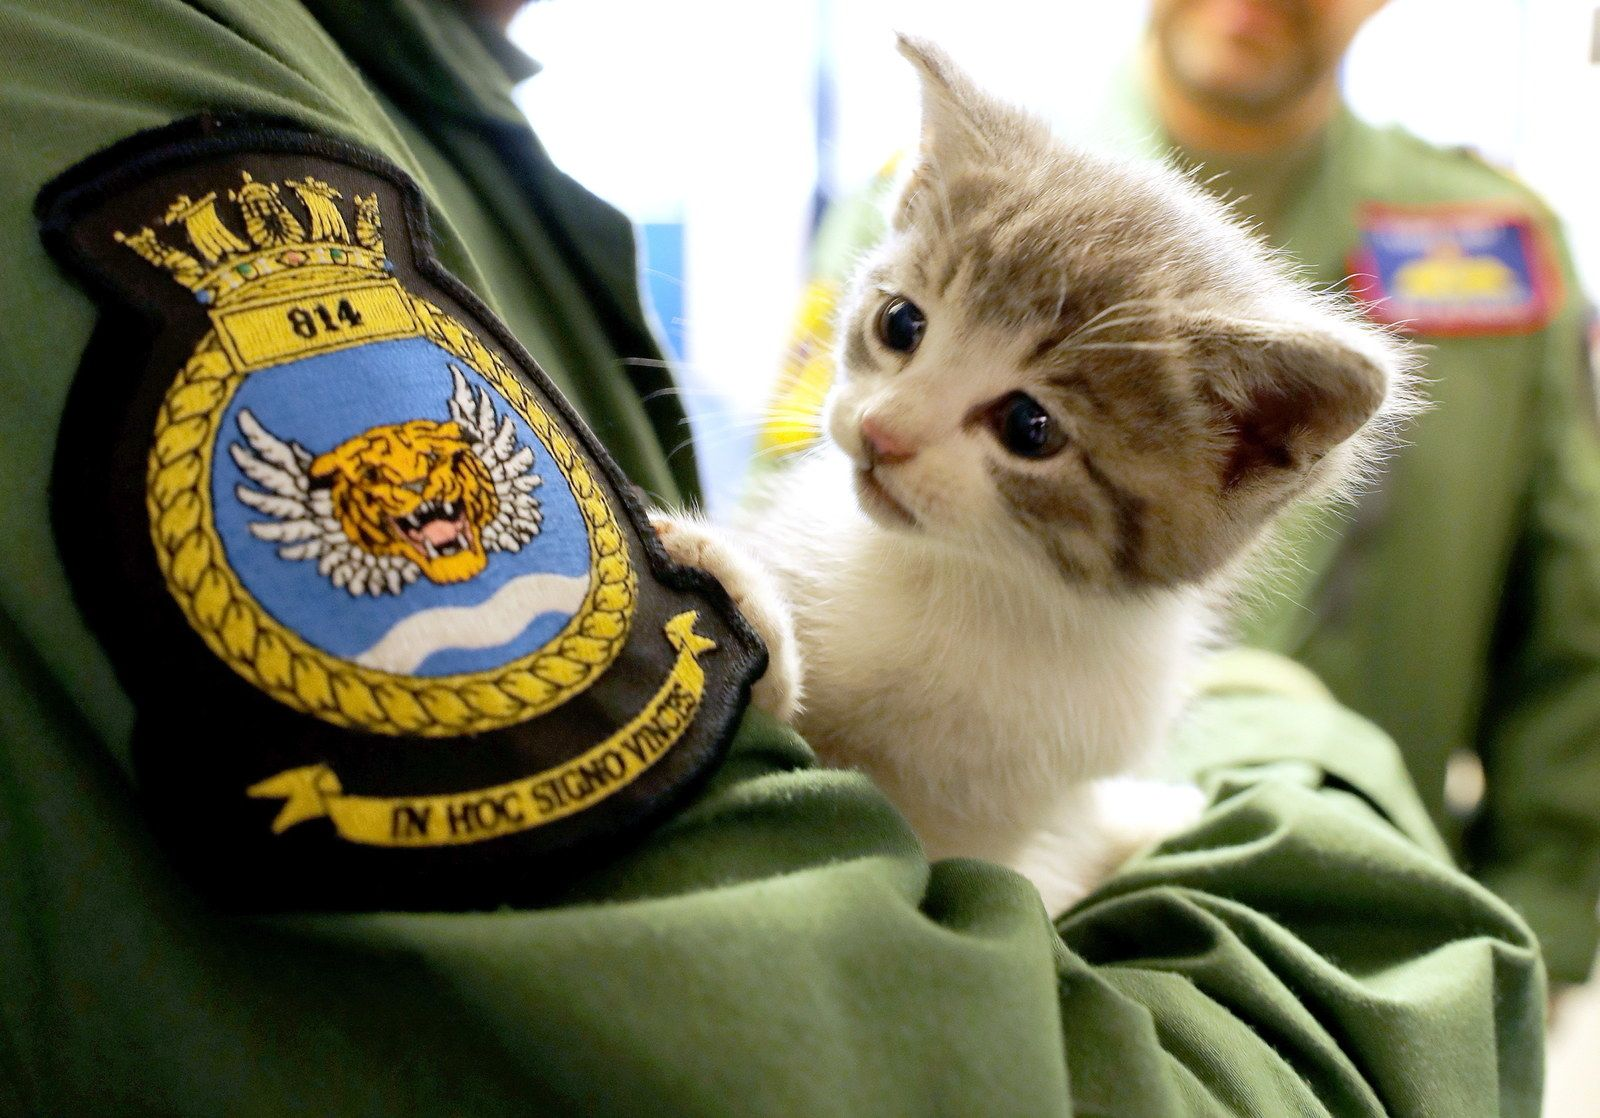 This Is Tigger A Renegade Kitten From Birmingham Who Clung To A Car As It Drove 300 Miles To A Naval Base In Cornwall Kitten Tiger Striped Cat Pilot Car